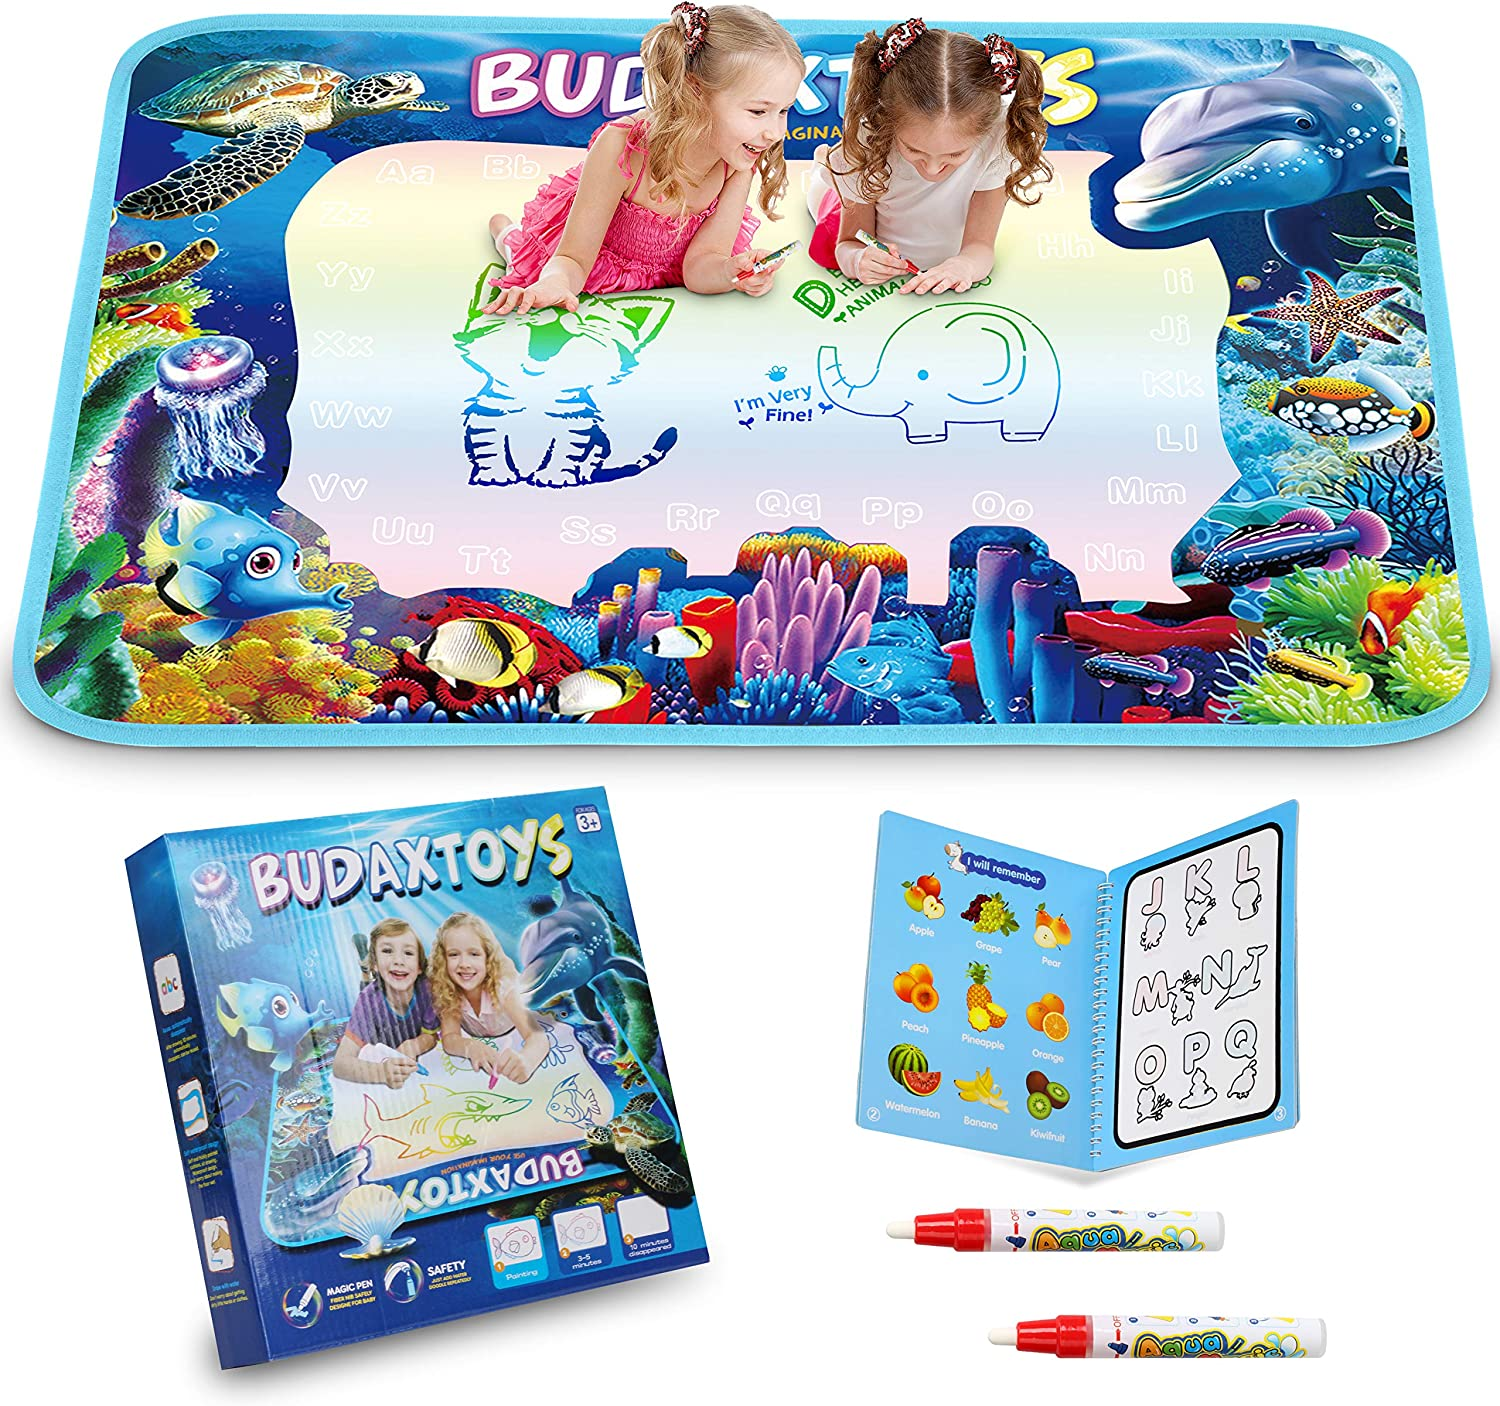 Hierceson Aqua Magic Doodle Mat 40 X 28 Inches Extra Large Water Drawing Doodling Mat Coloring Mat Educational Toys Gifts for Kids Toddlers Boys Girls Age 2 3 4 5 6 7 8 Year Old